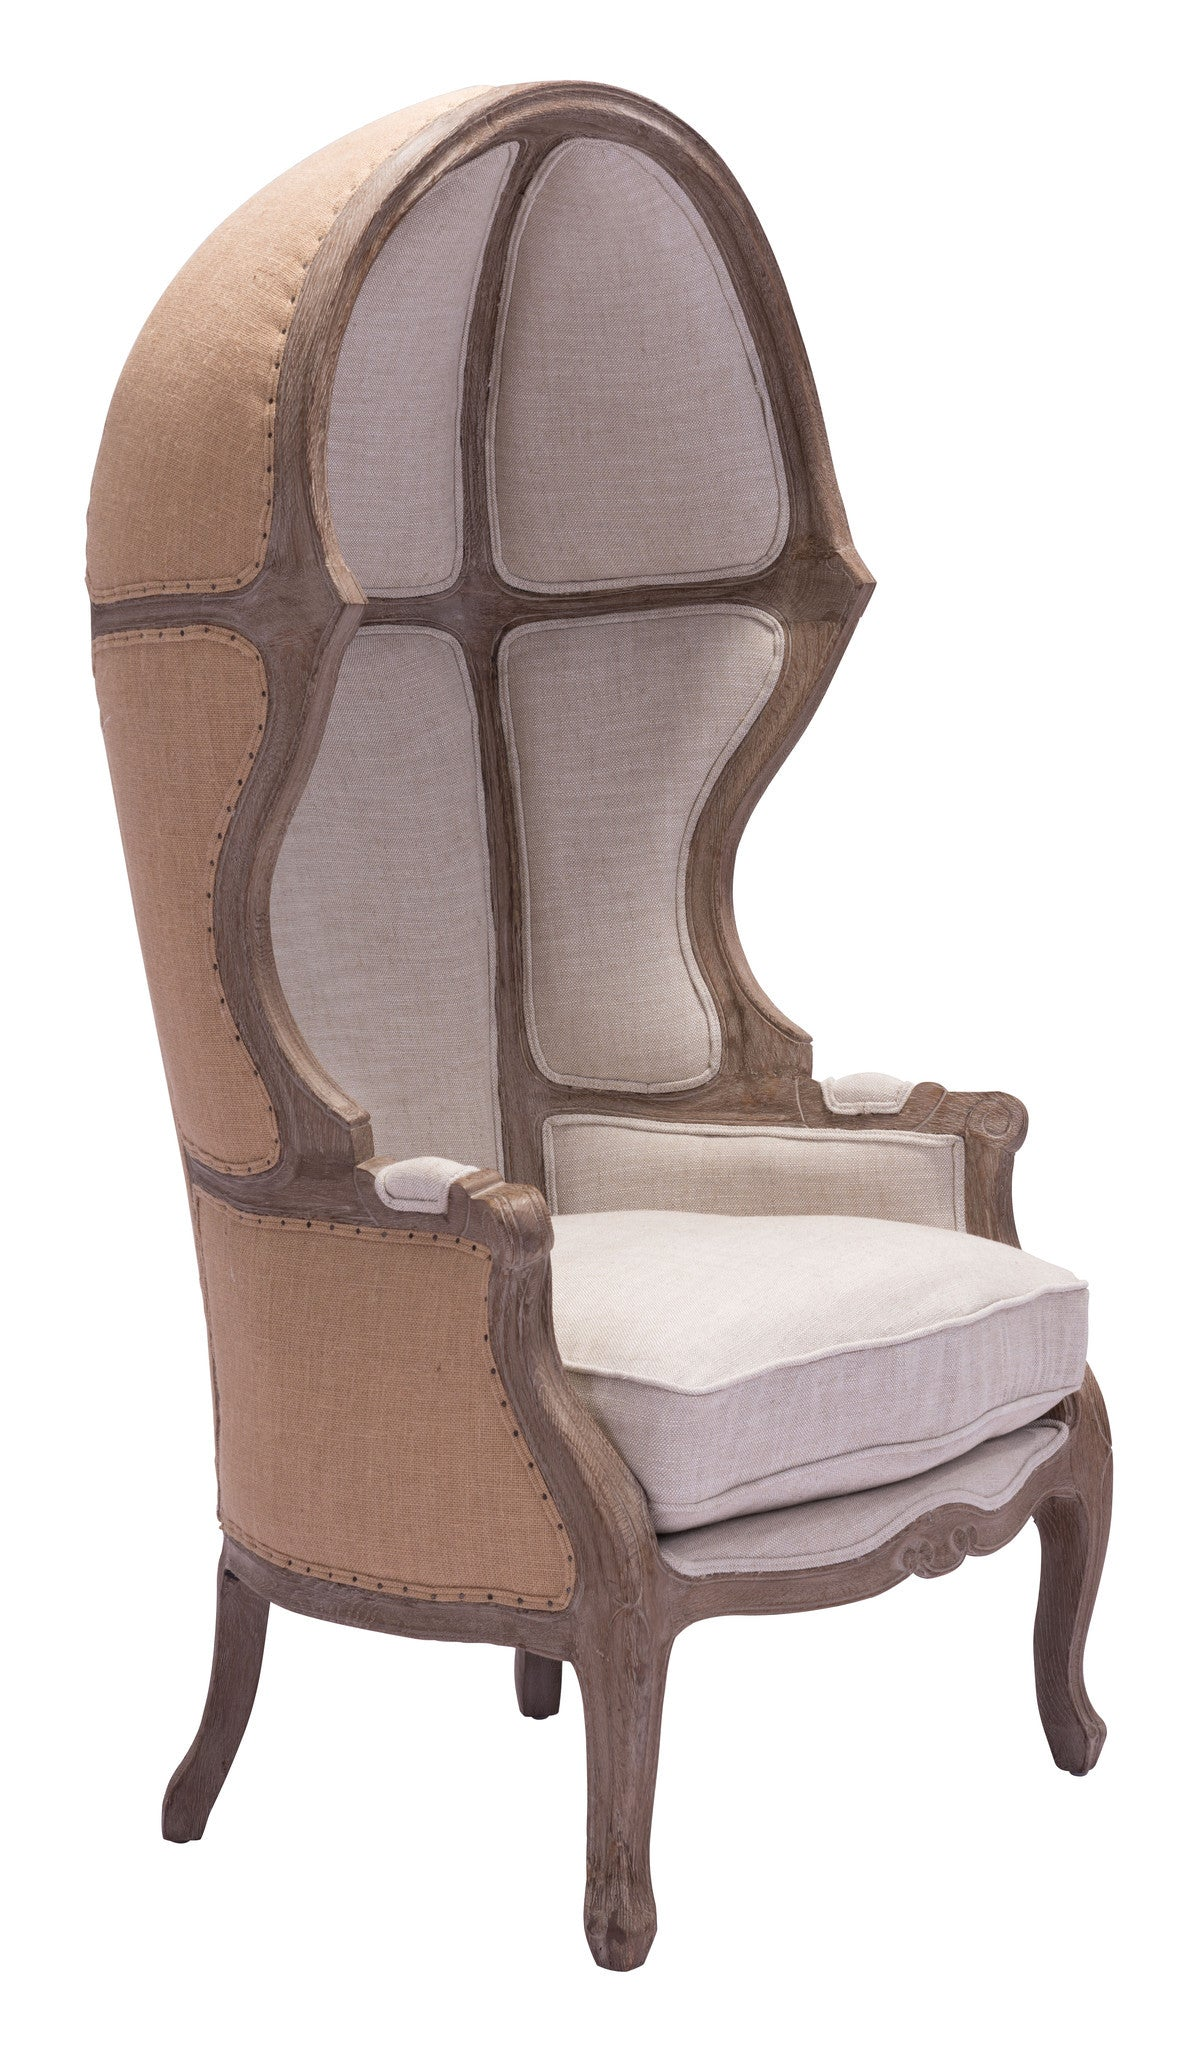 Ellis Extra Tall Chair with Sculpted Wood Frame u0026 Beige Fabric-Accent Chairs-Alan ...  sc 1 st  Alan Decor & Ellis Extra Tall Chair with Sculpted Wood Frame u0026 Beige Fabric